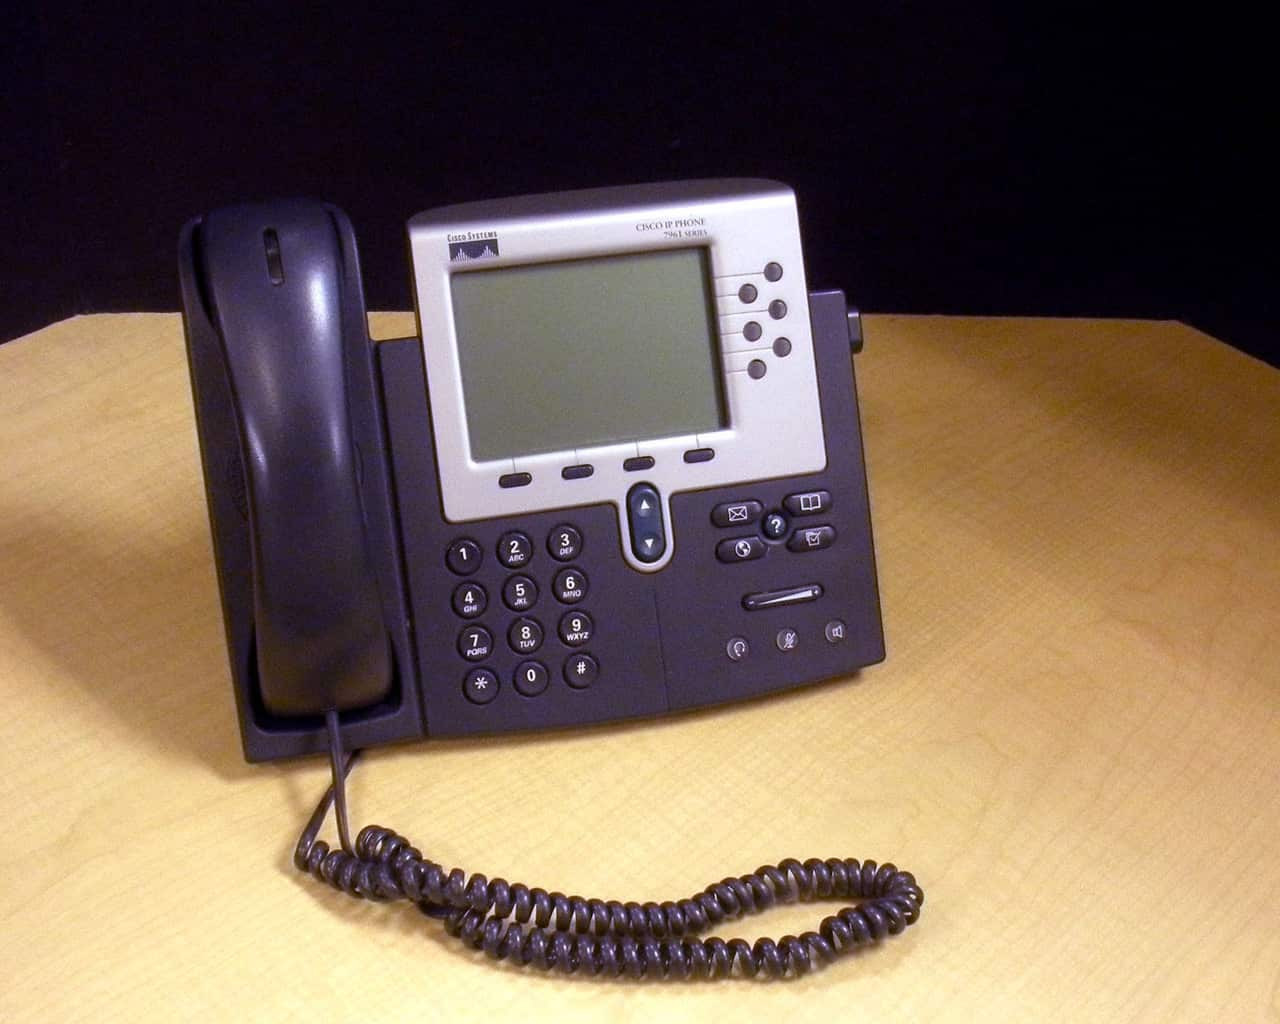 Cisco Unified IP Phone 7900 Series | Flagship | Flagship